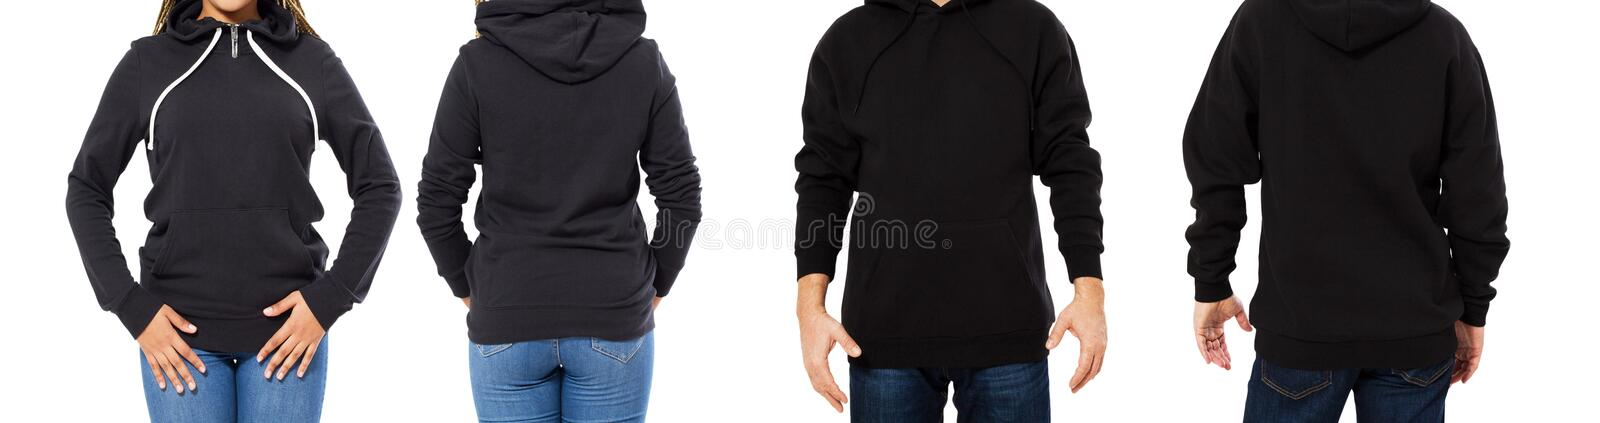 Female and male hoodie mock up isolated, hood mockup empty for logo, sweatshirt collage or set.  royalty free stock photo